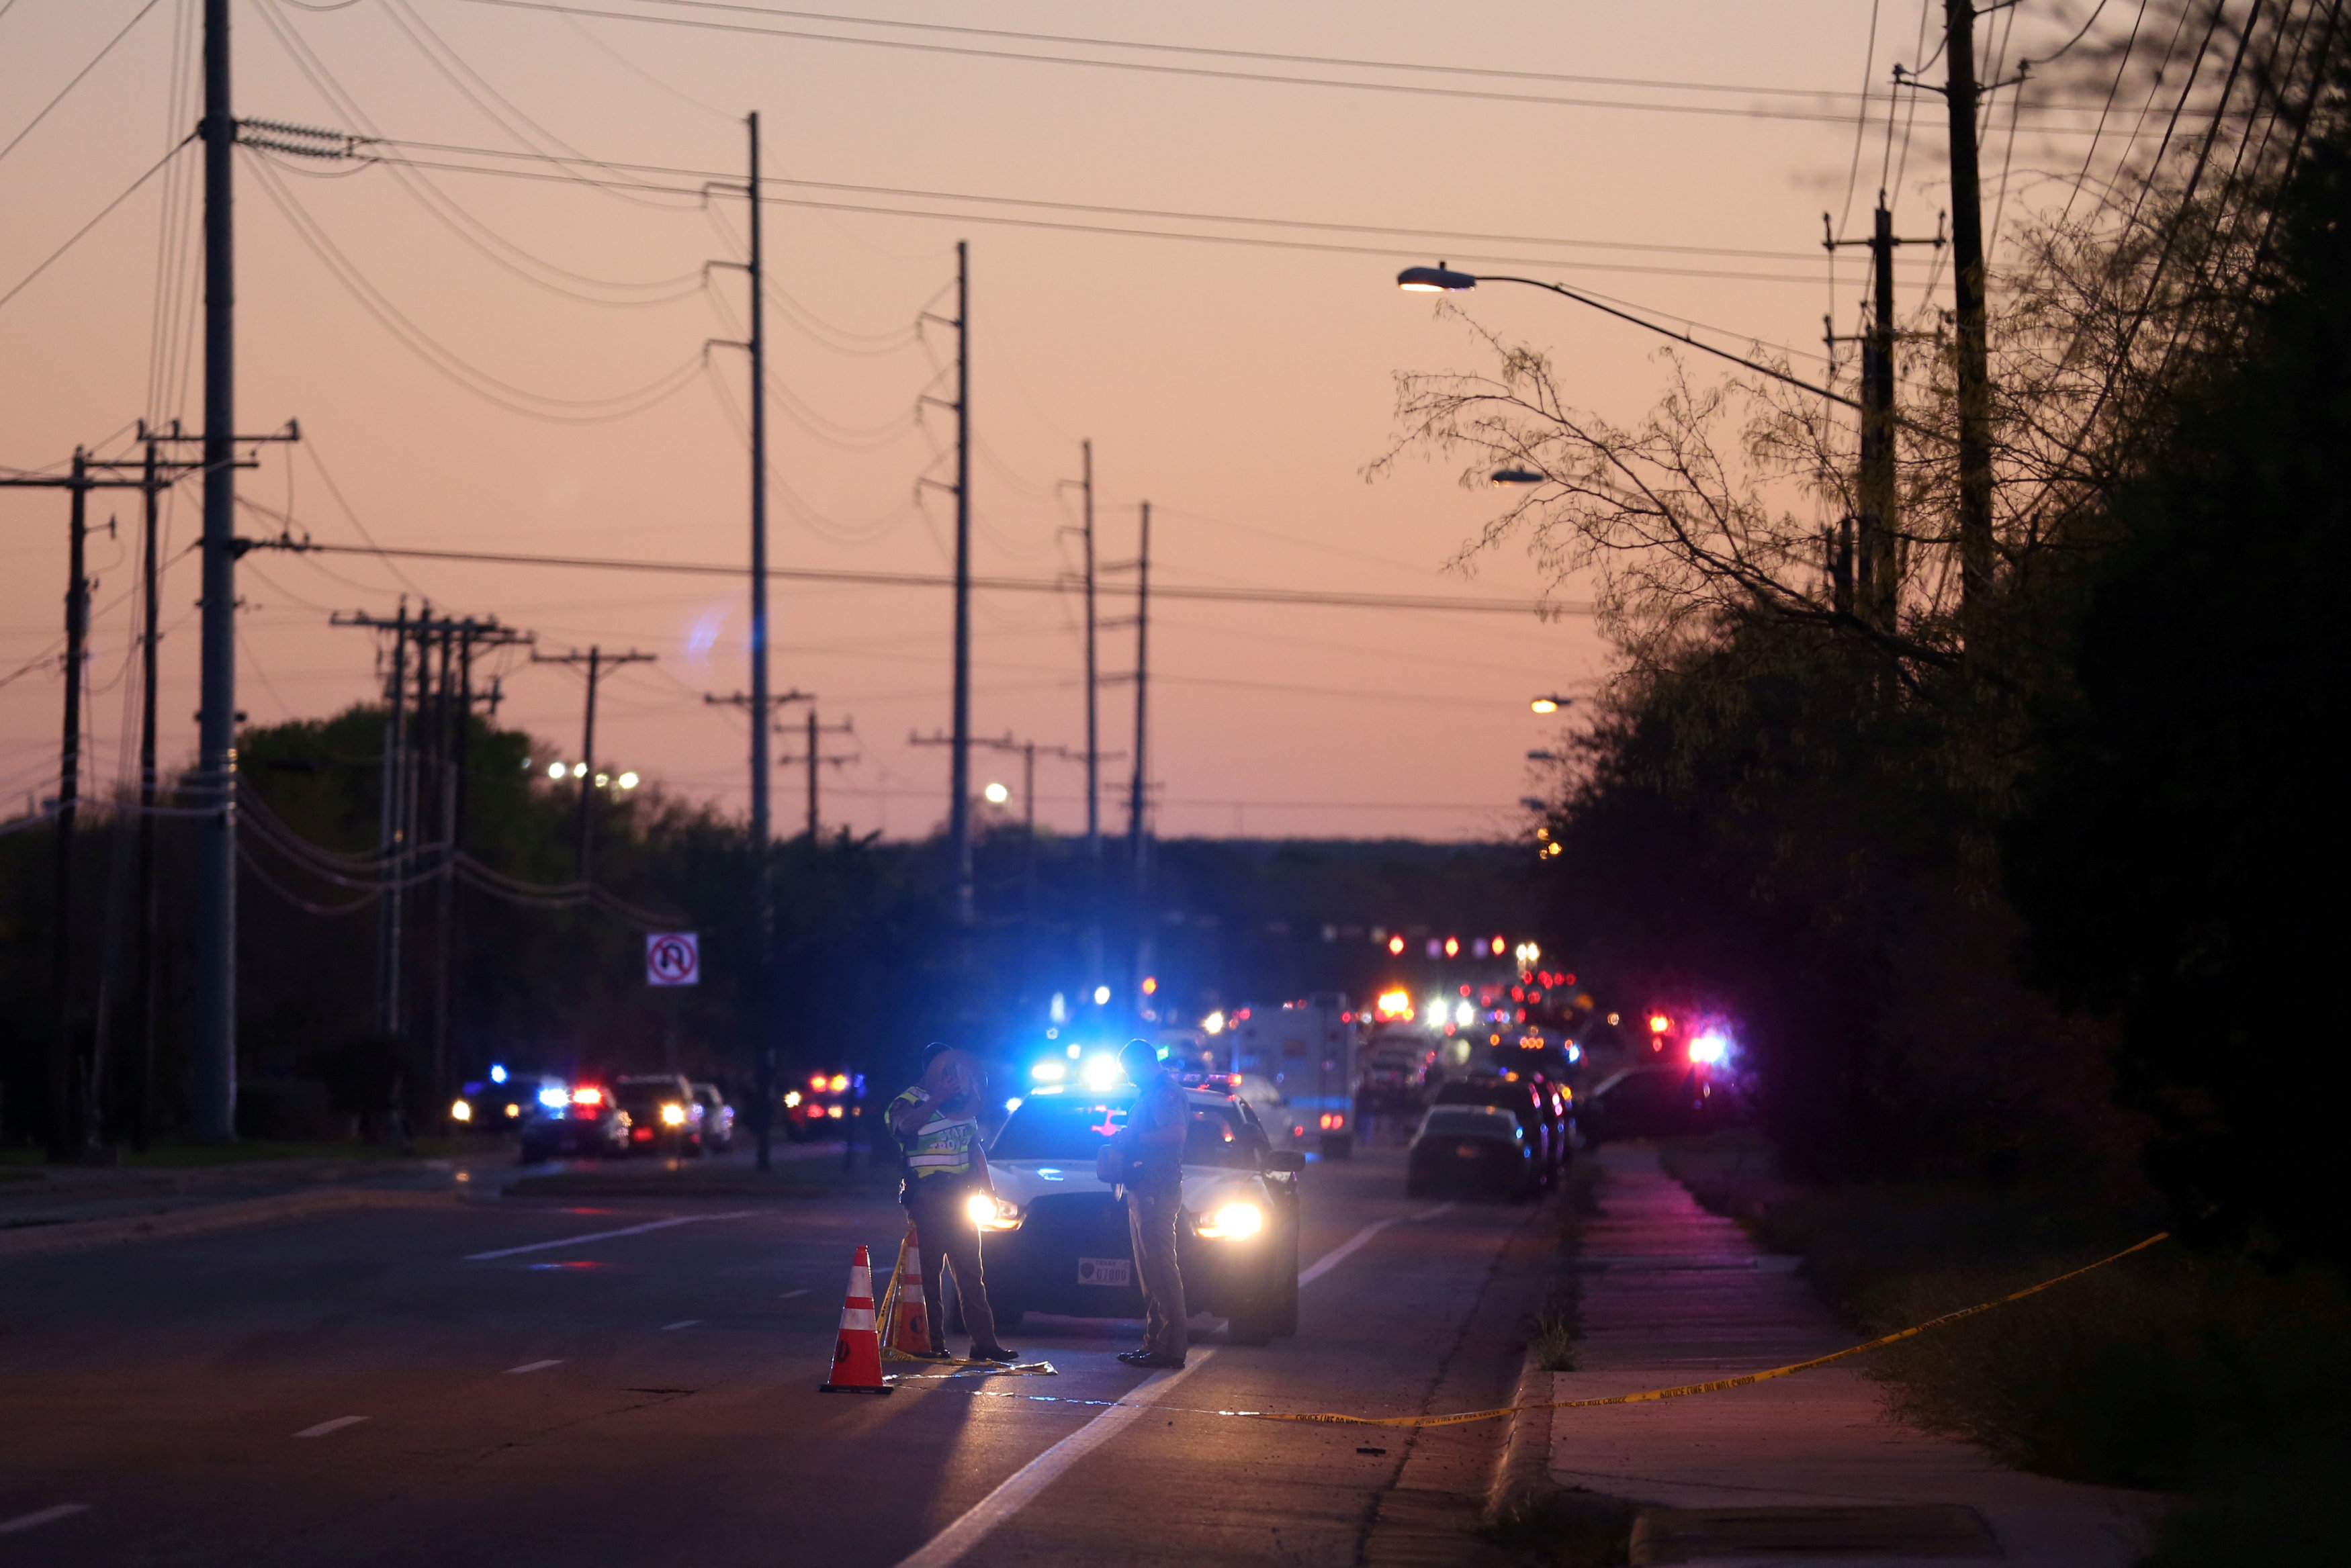 FILE PHOTO: Law enforcement personnel investigate an incident that they said involved an incendiary device in the 9800 block of Brodie Lane in Austin, Texas, U.S., March 20, 2018.REUTERS/Loren Elliott